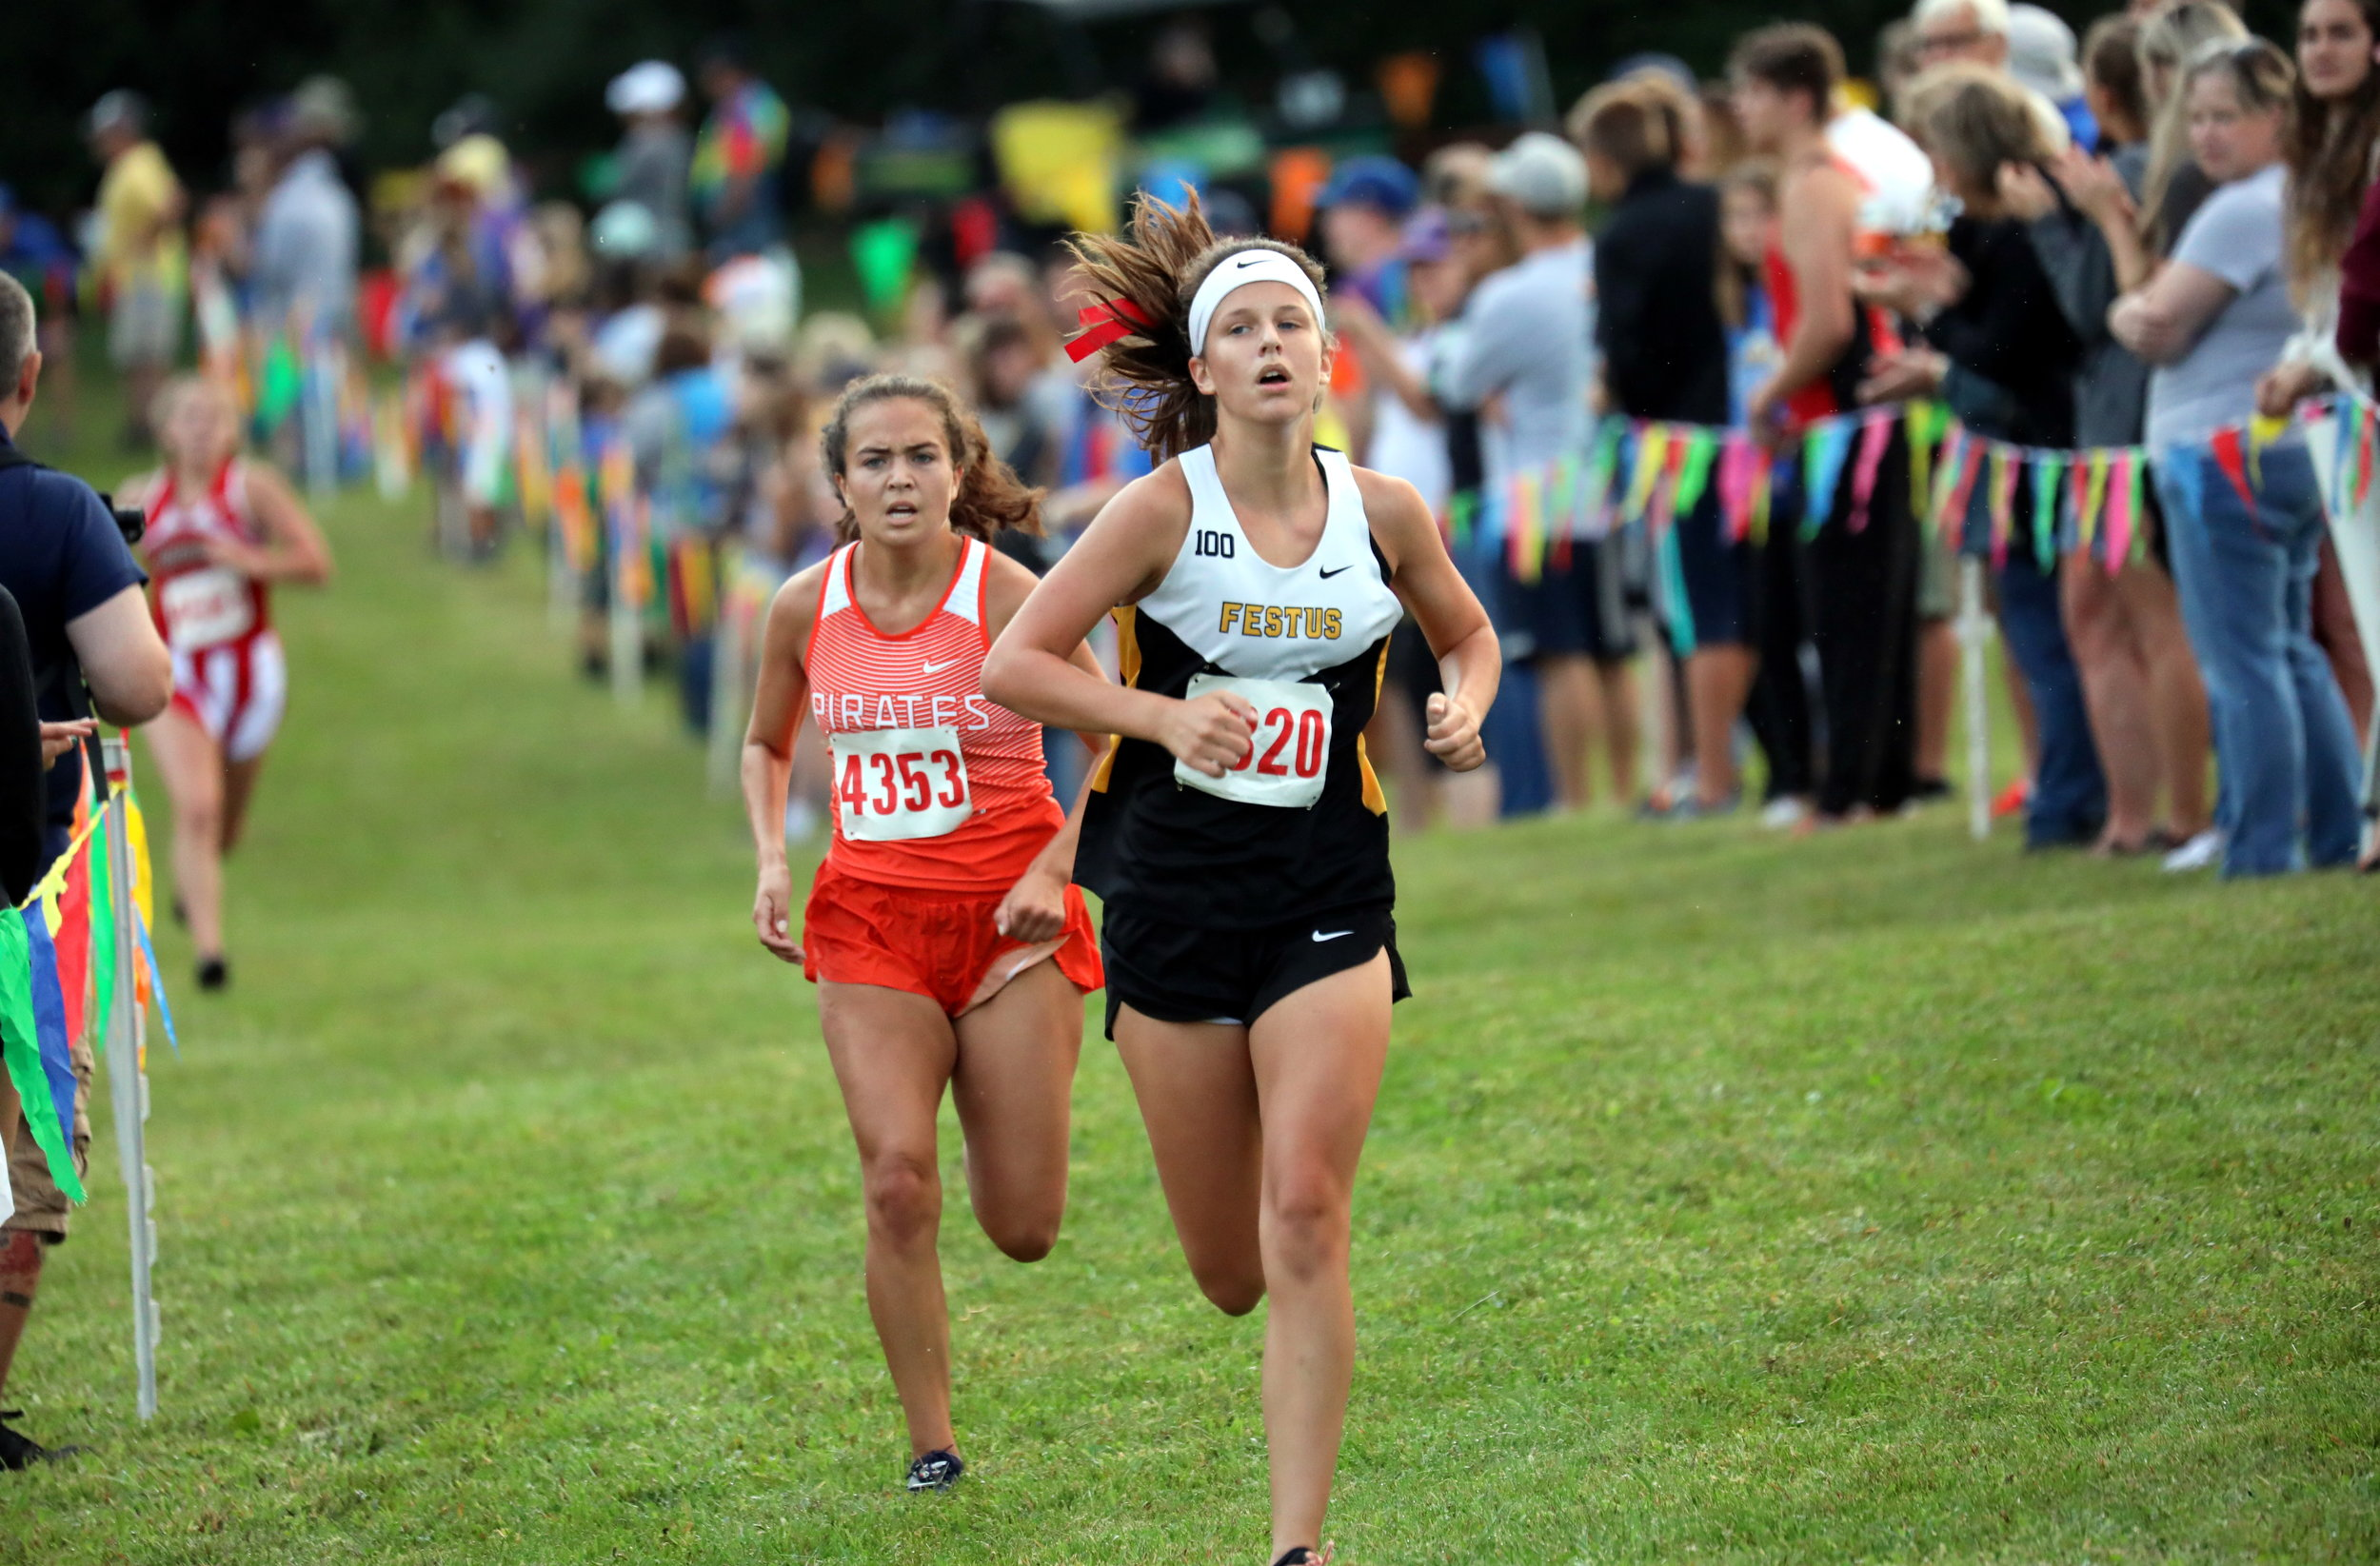 KCPREPREPORT/Special to the Citizen  Platte County's Taylor Giger (4353) follows Festus' Allison Faerber toward the finish line on Saturday, Sept. 7 at the Tim Nixon Invitational in Liberty.